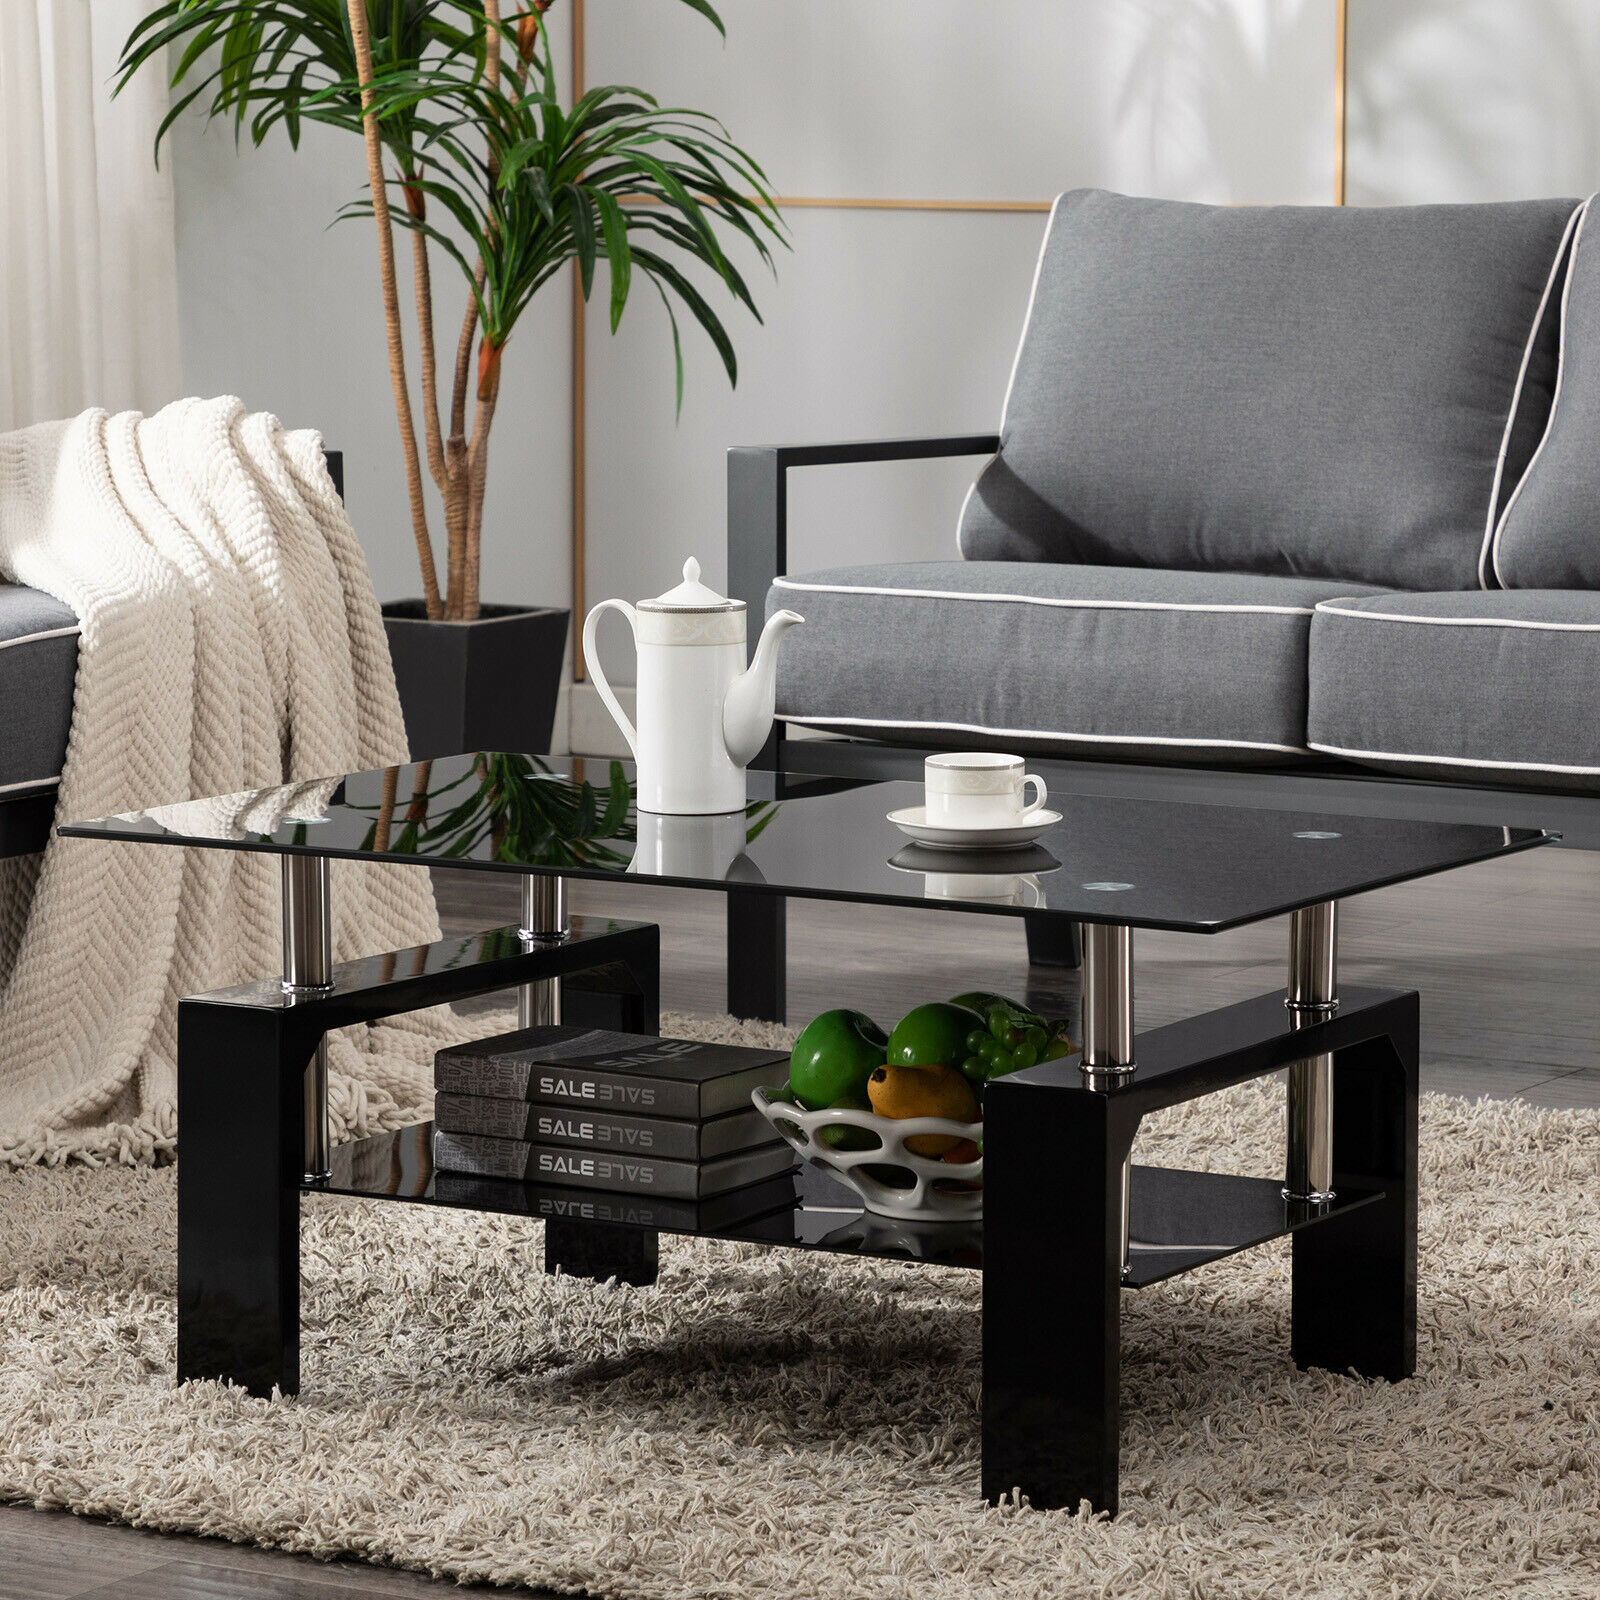 Picture of: Hodedah Glass Rectangle Coffee Table Clear Black For Sale Online Ebay